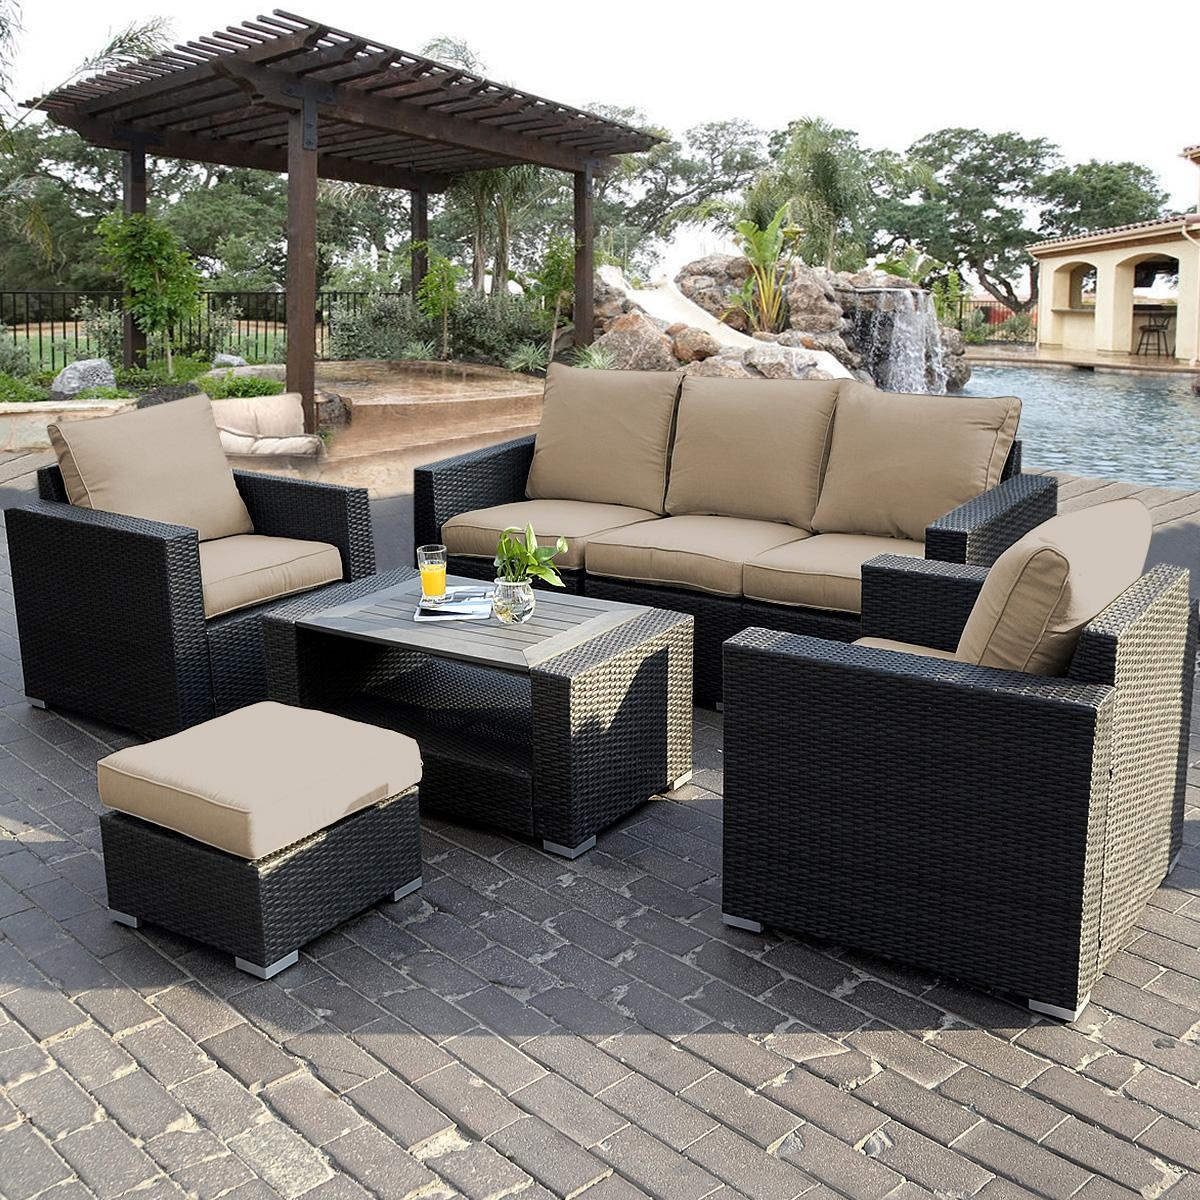 Patio Sectional Furniture Walmart | Patio Decoration Regarding Cheap Outdoor Sectionals (View 8 of 15)